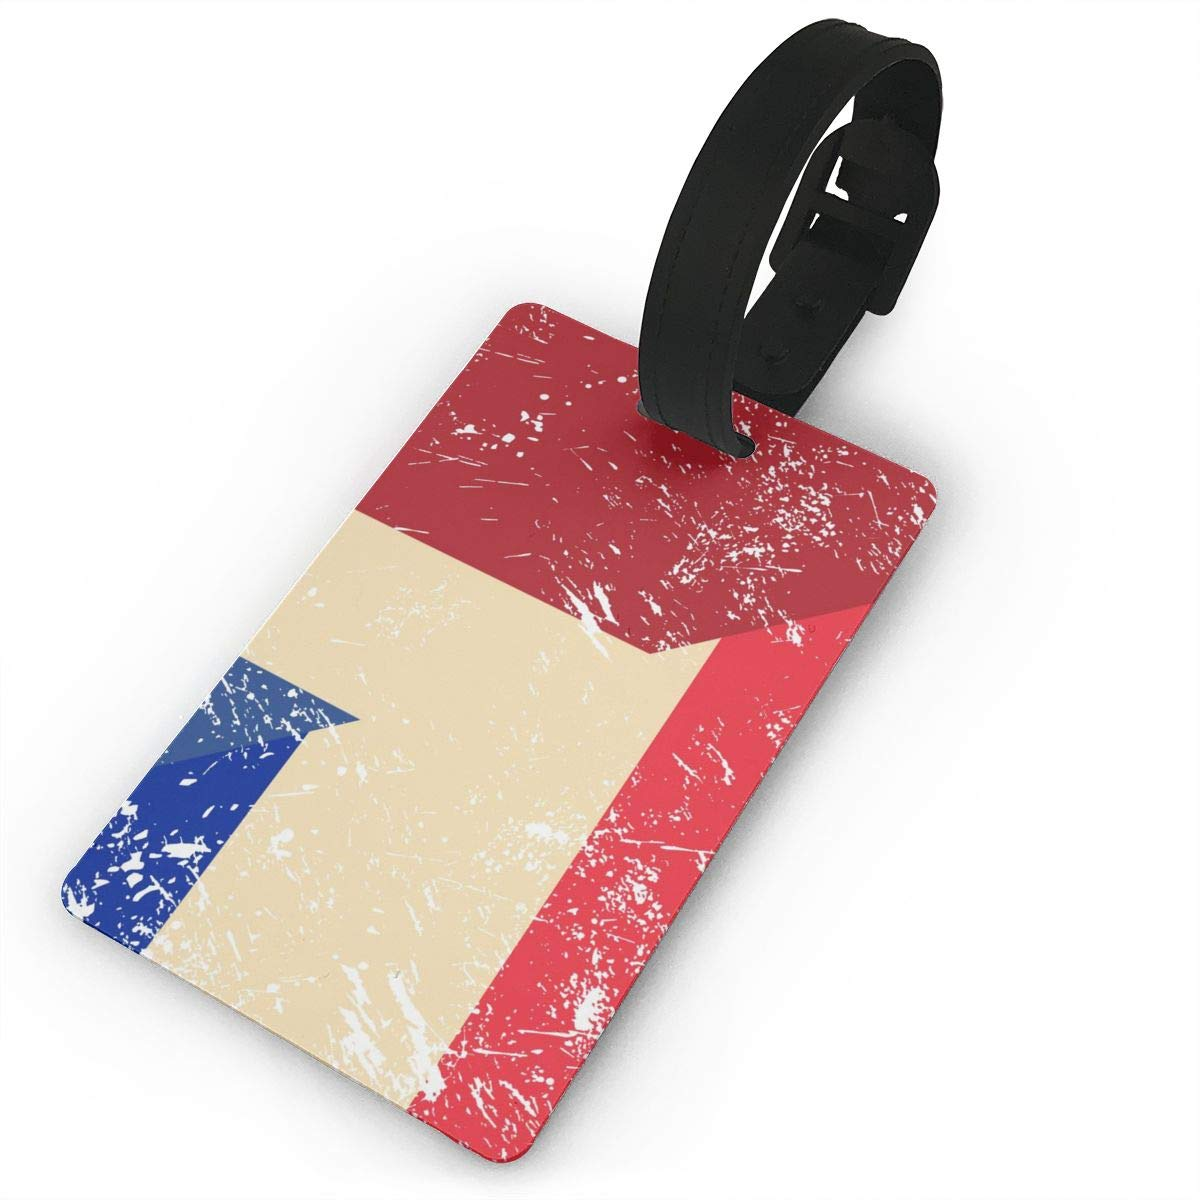 NB UUD France and Netherlands Retro Flag Travel Luggage Tag Fashionable Employees Card Luggage Tag Holders Travel ID Identification Labels for Baggage Suitcases Bags